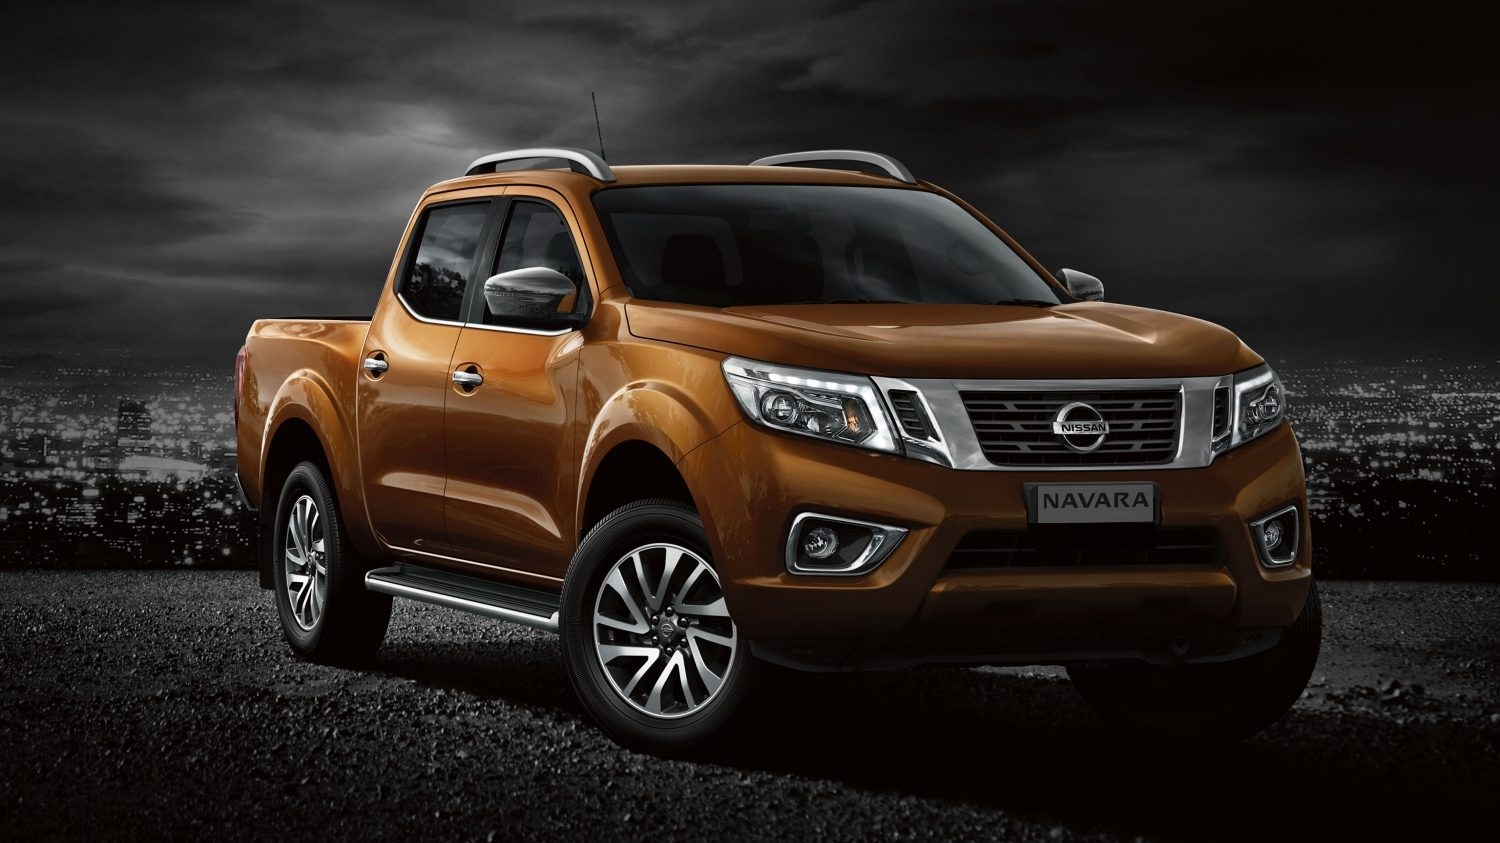 nissan navara pick up 4x4 nissan. Black Bedroom Furniture Sets. Home Design Ideas